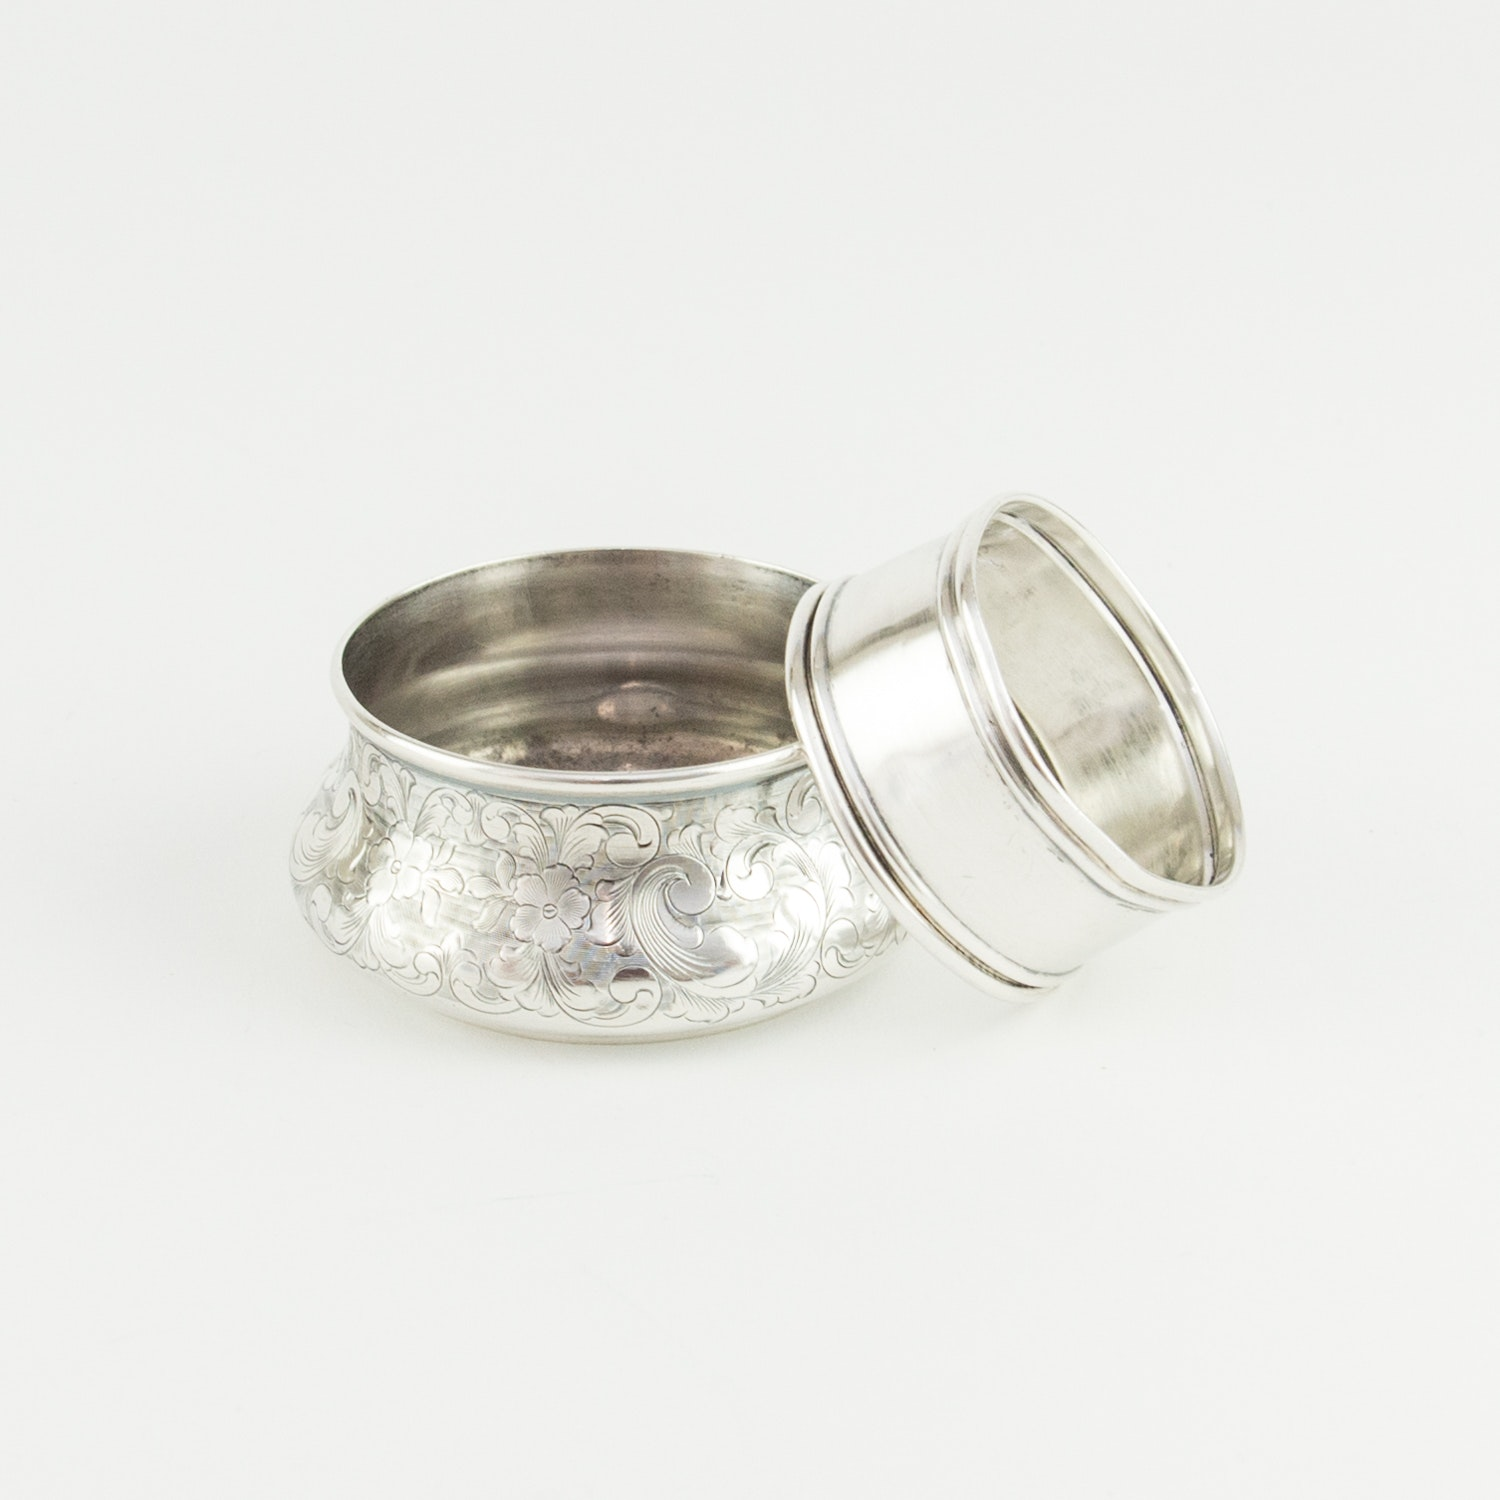 Sterling Silver Bowl and Napkin Ring